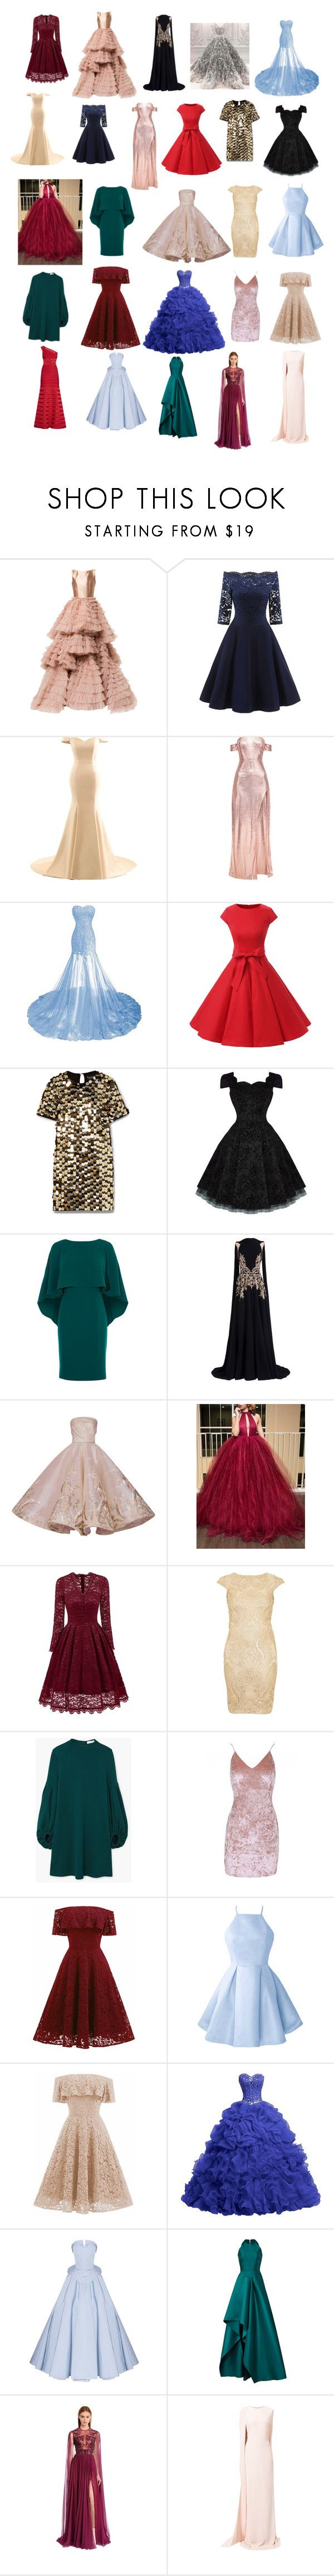 """Favourite dresses ! ❤"" by nalima-is-life ❤ liked on Polyvore featuring Isabel Sanchis, Rachel Zoe, Georges Hobeika, Mark Bumgarner, TFNC, MANGO, Christian Siriano, Badgley Mischka, Zuhair Murad and STELLA McCARTNEY"